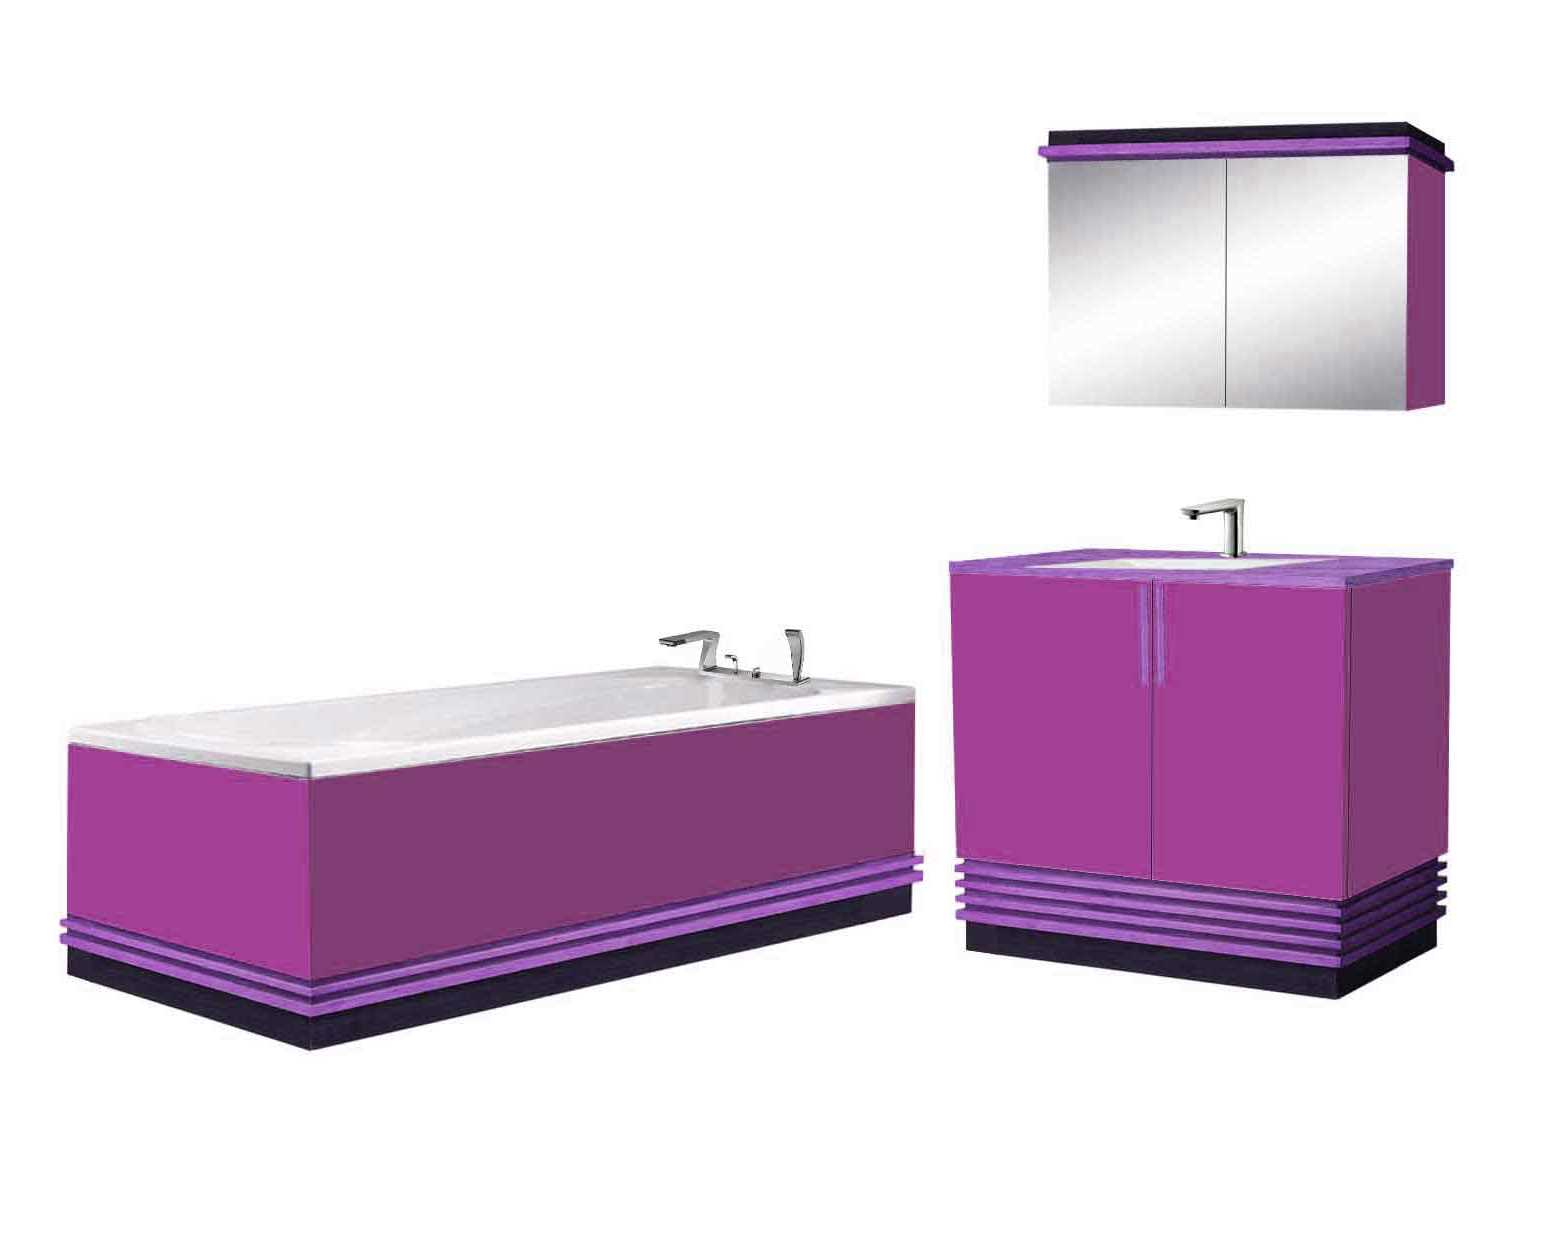 New Art Deco Streamlined Style Lacquered Wood Bathroom